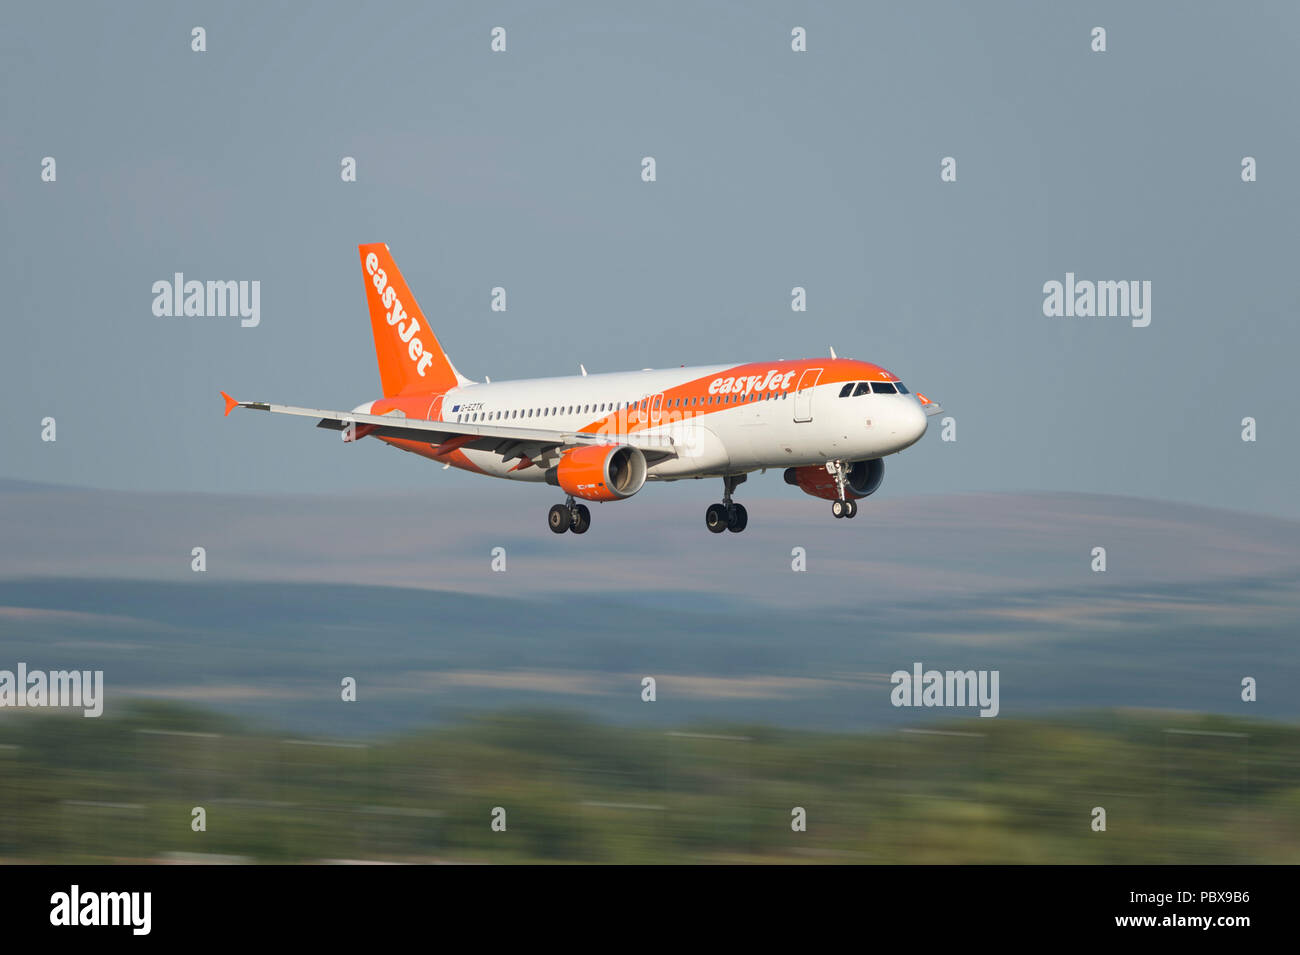 An EasyJet Airbus A320-200 comes in to land at Manchester Airport, UK. - Stock Image